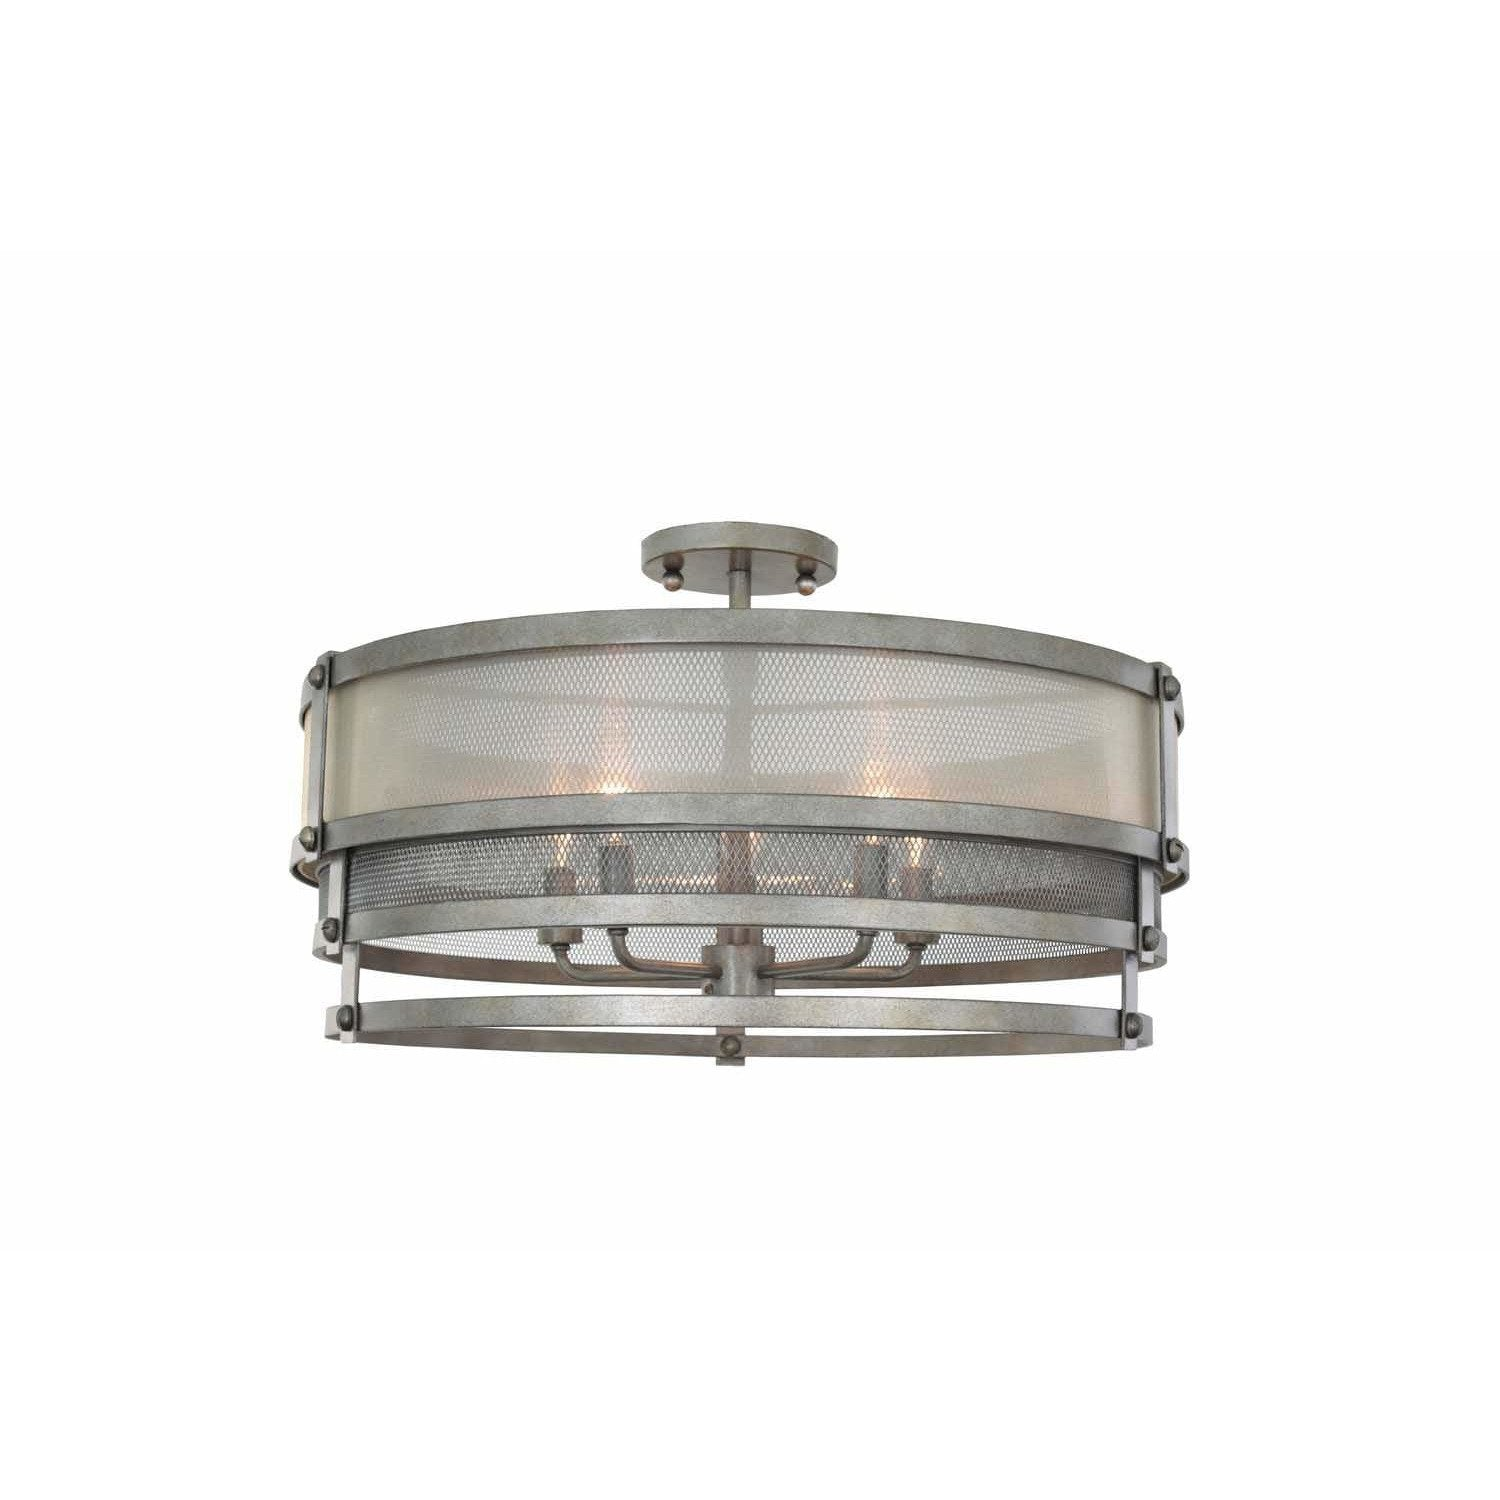 Kalco Lighting Semi Flush Mounts Bronze Jewel Tone Delano 24 Inch Semi Flush Mount By Kalco Lighting 503640